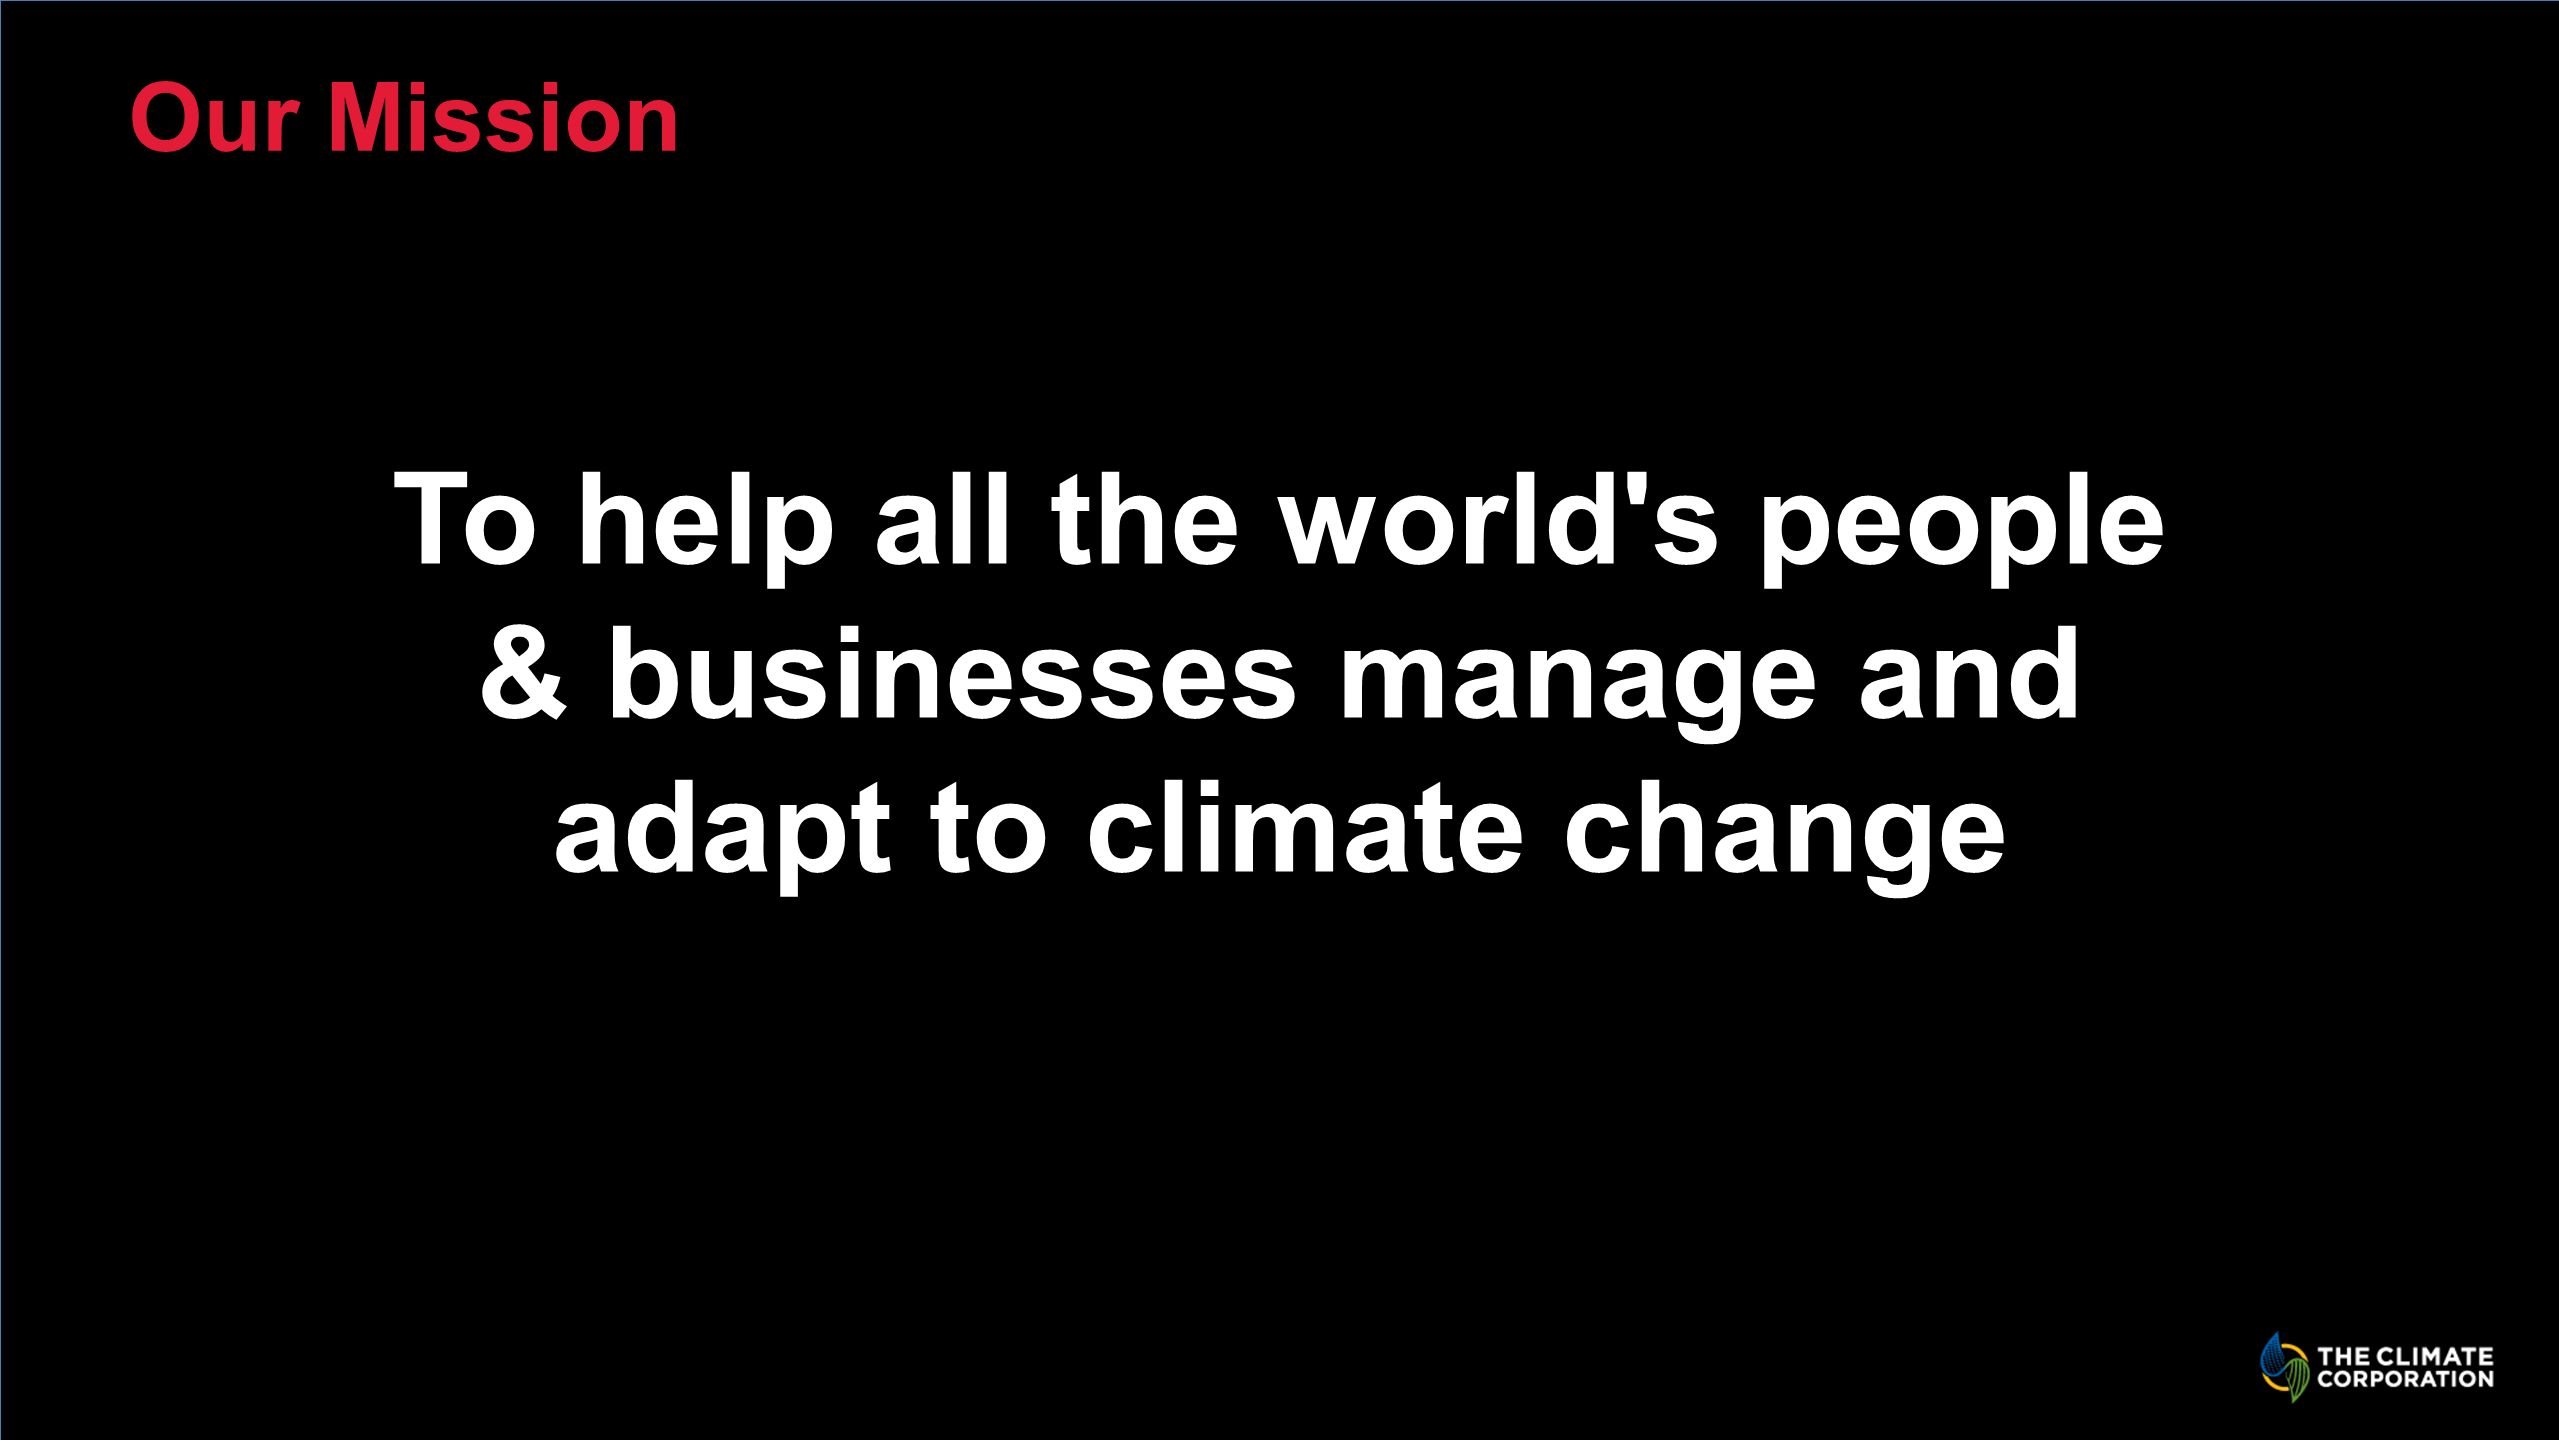 To help all the world s people & businesses manage and adapt to climate change Our Mission